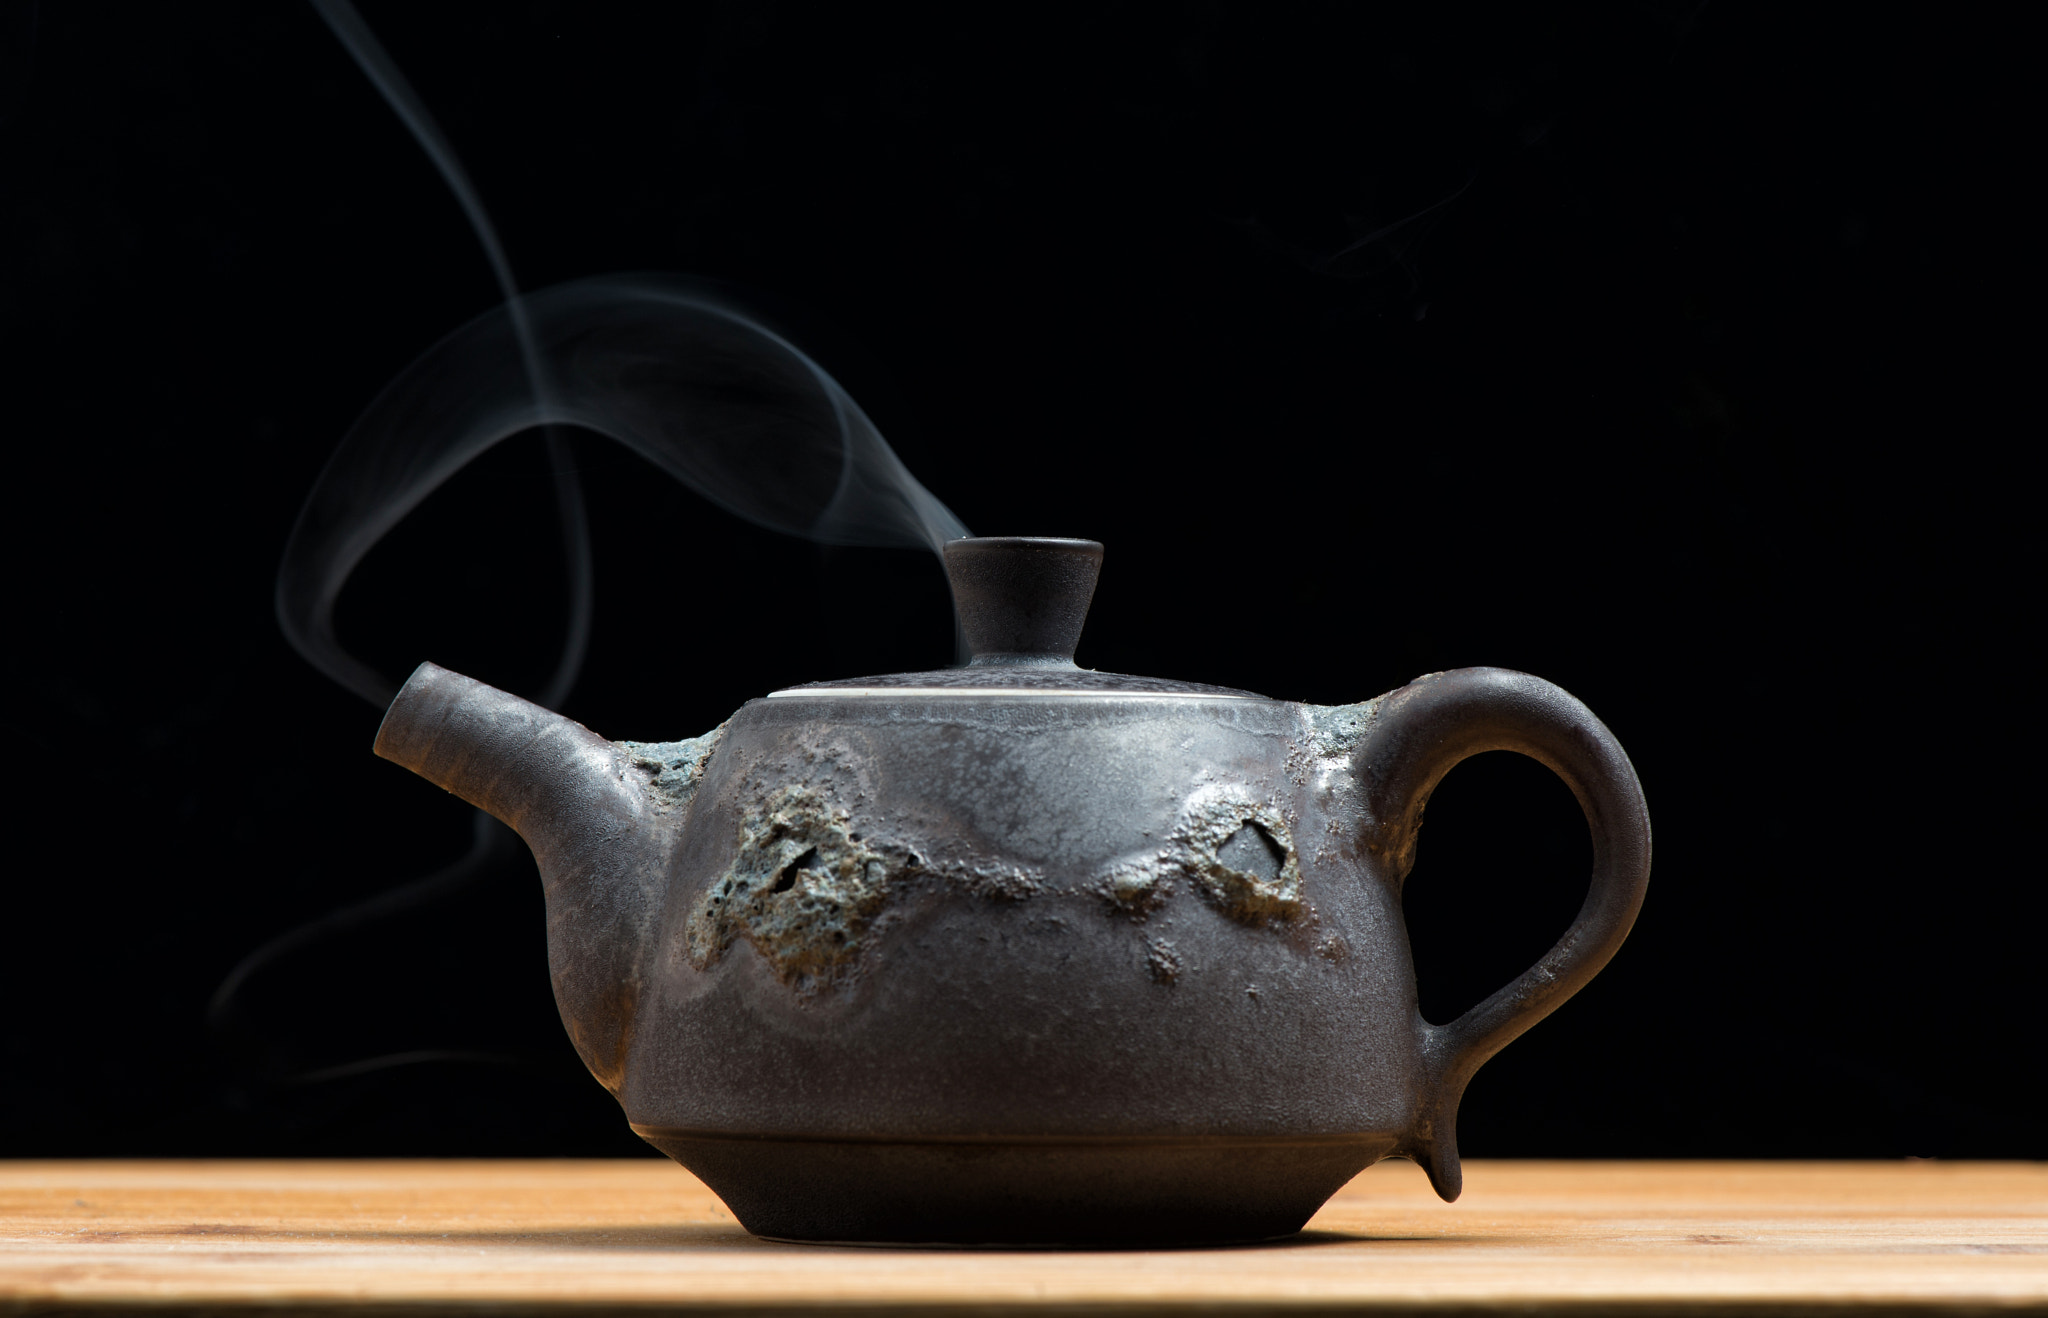 Photograph Tea time by Martin Cauchon on 500px